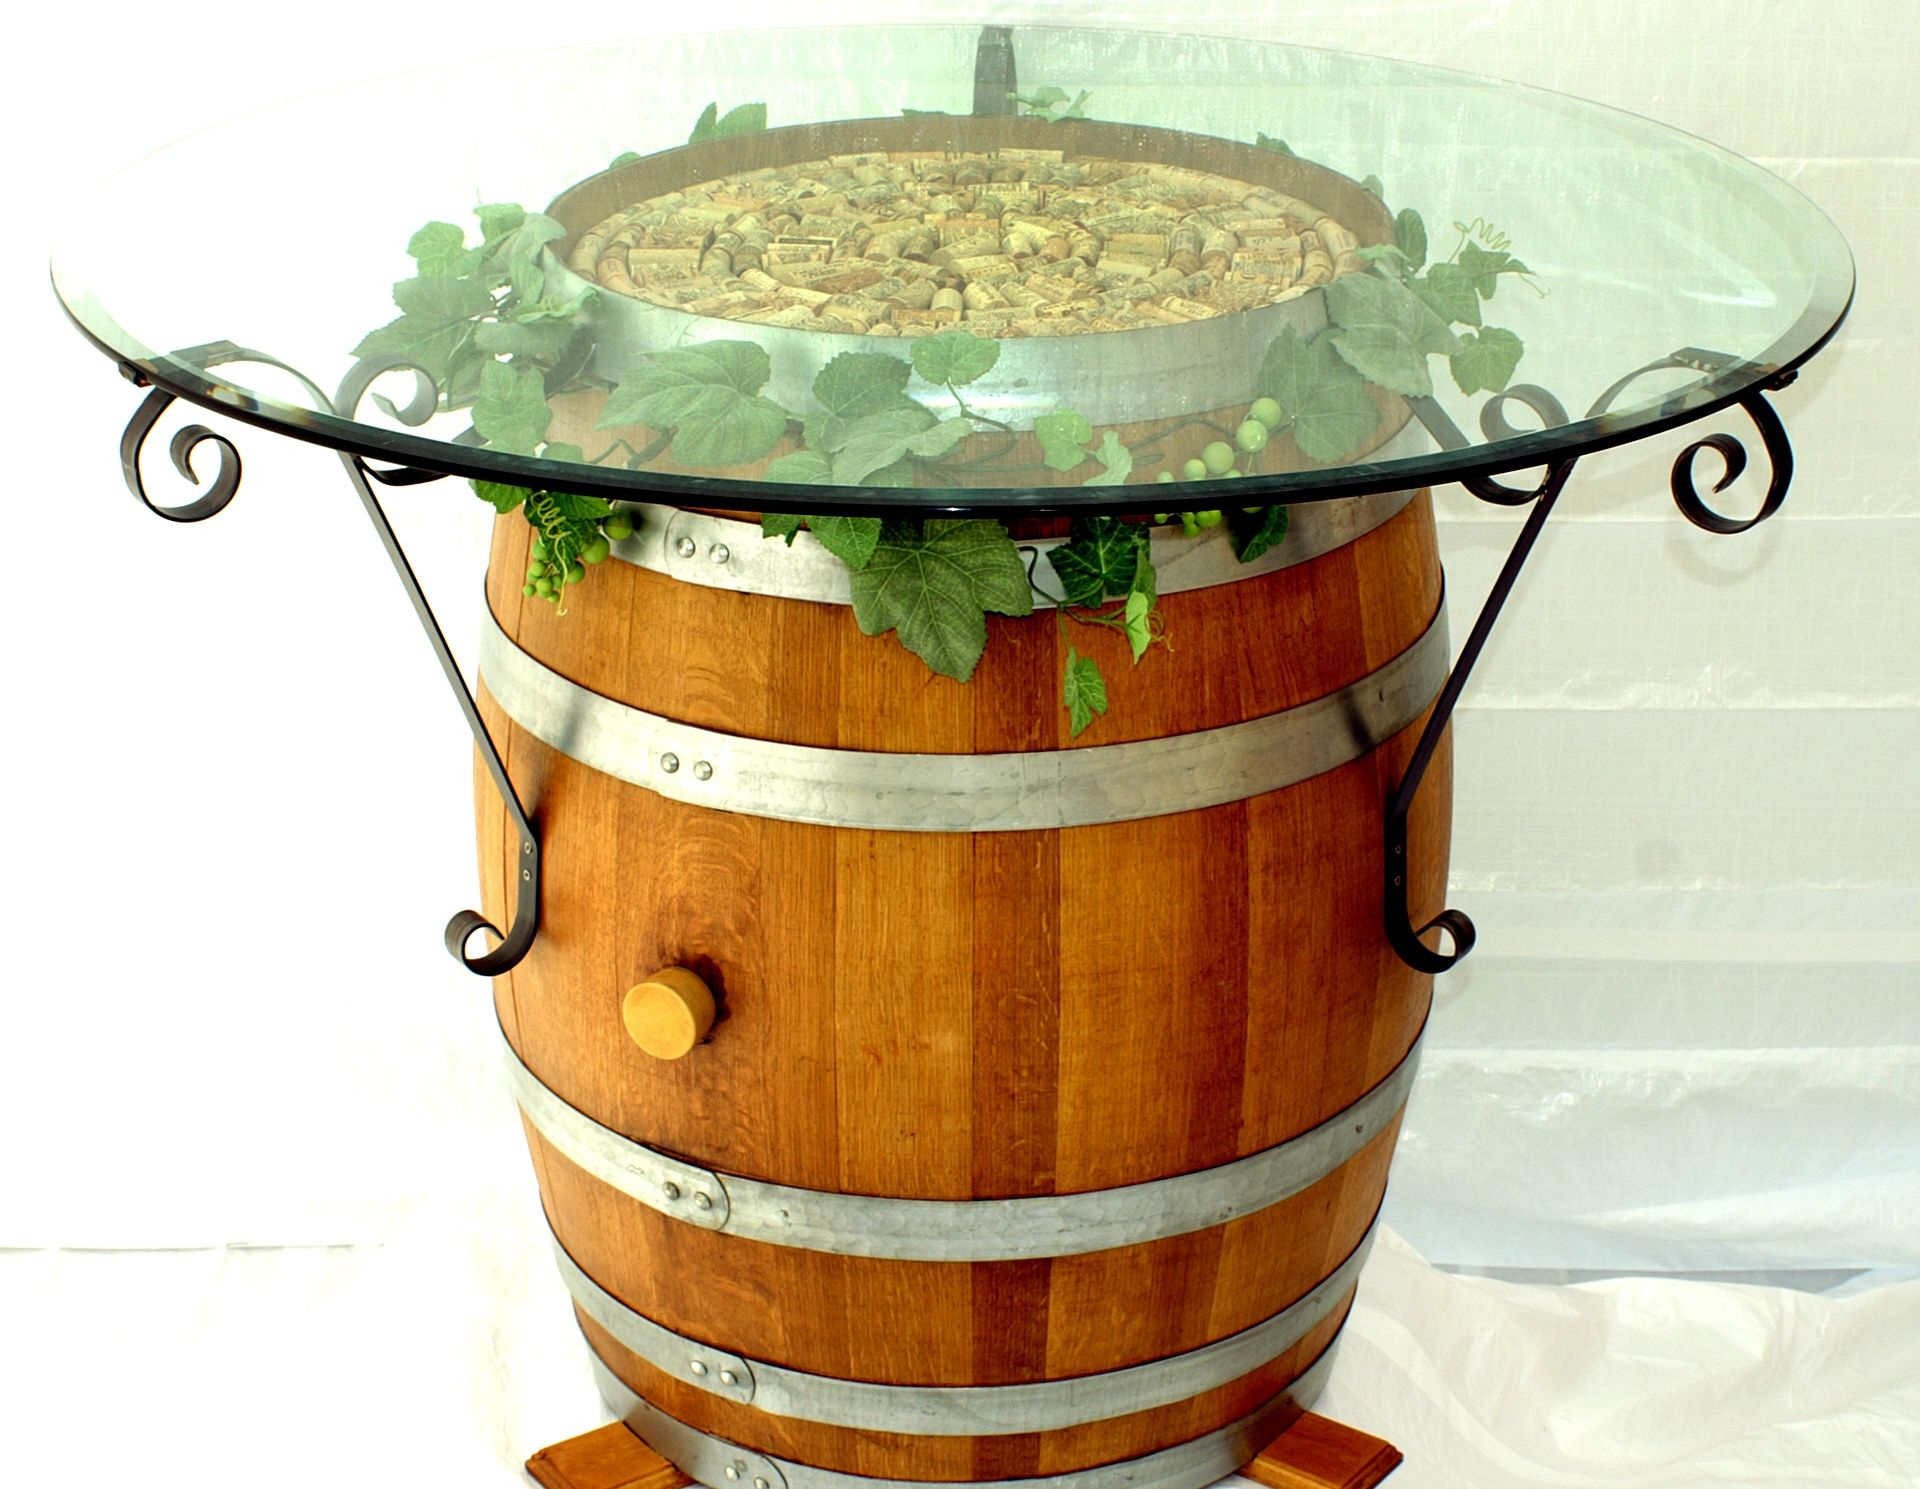 Barrel with glass top and corks underagain